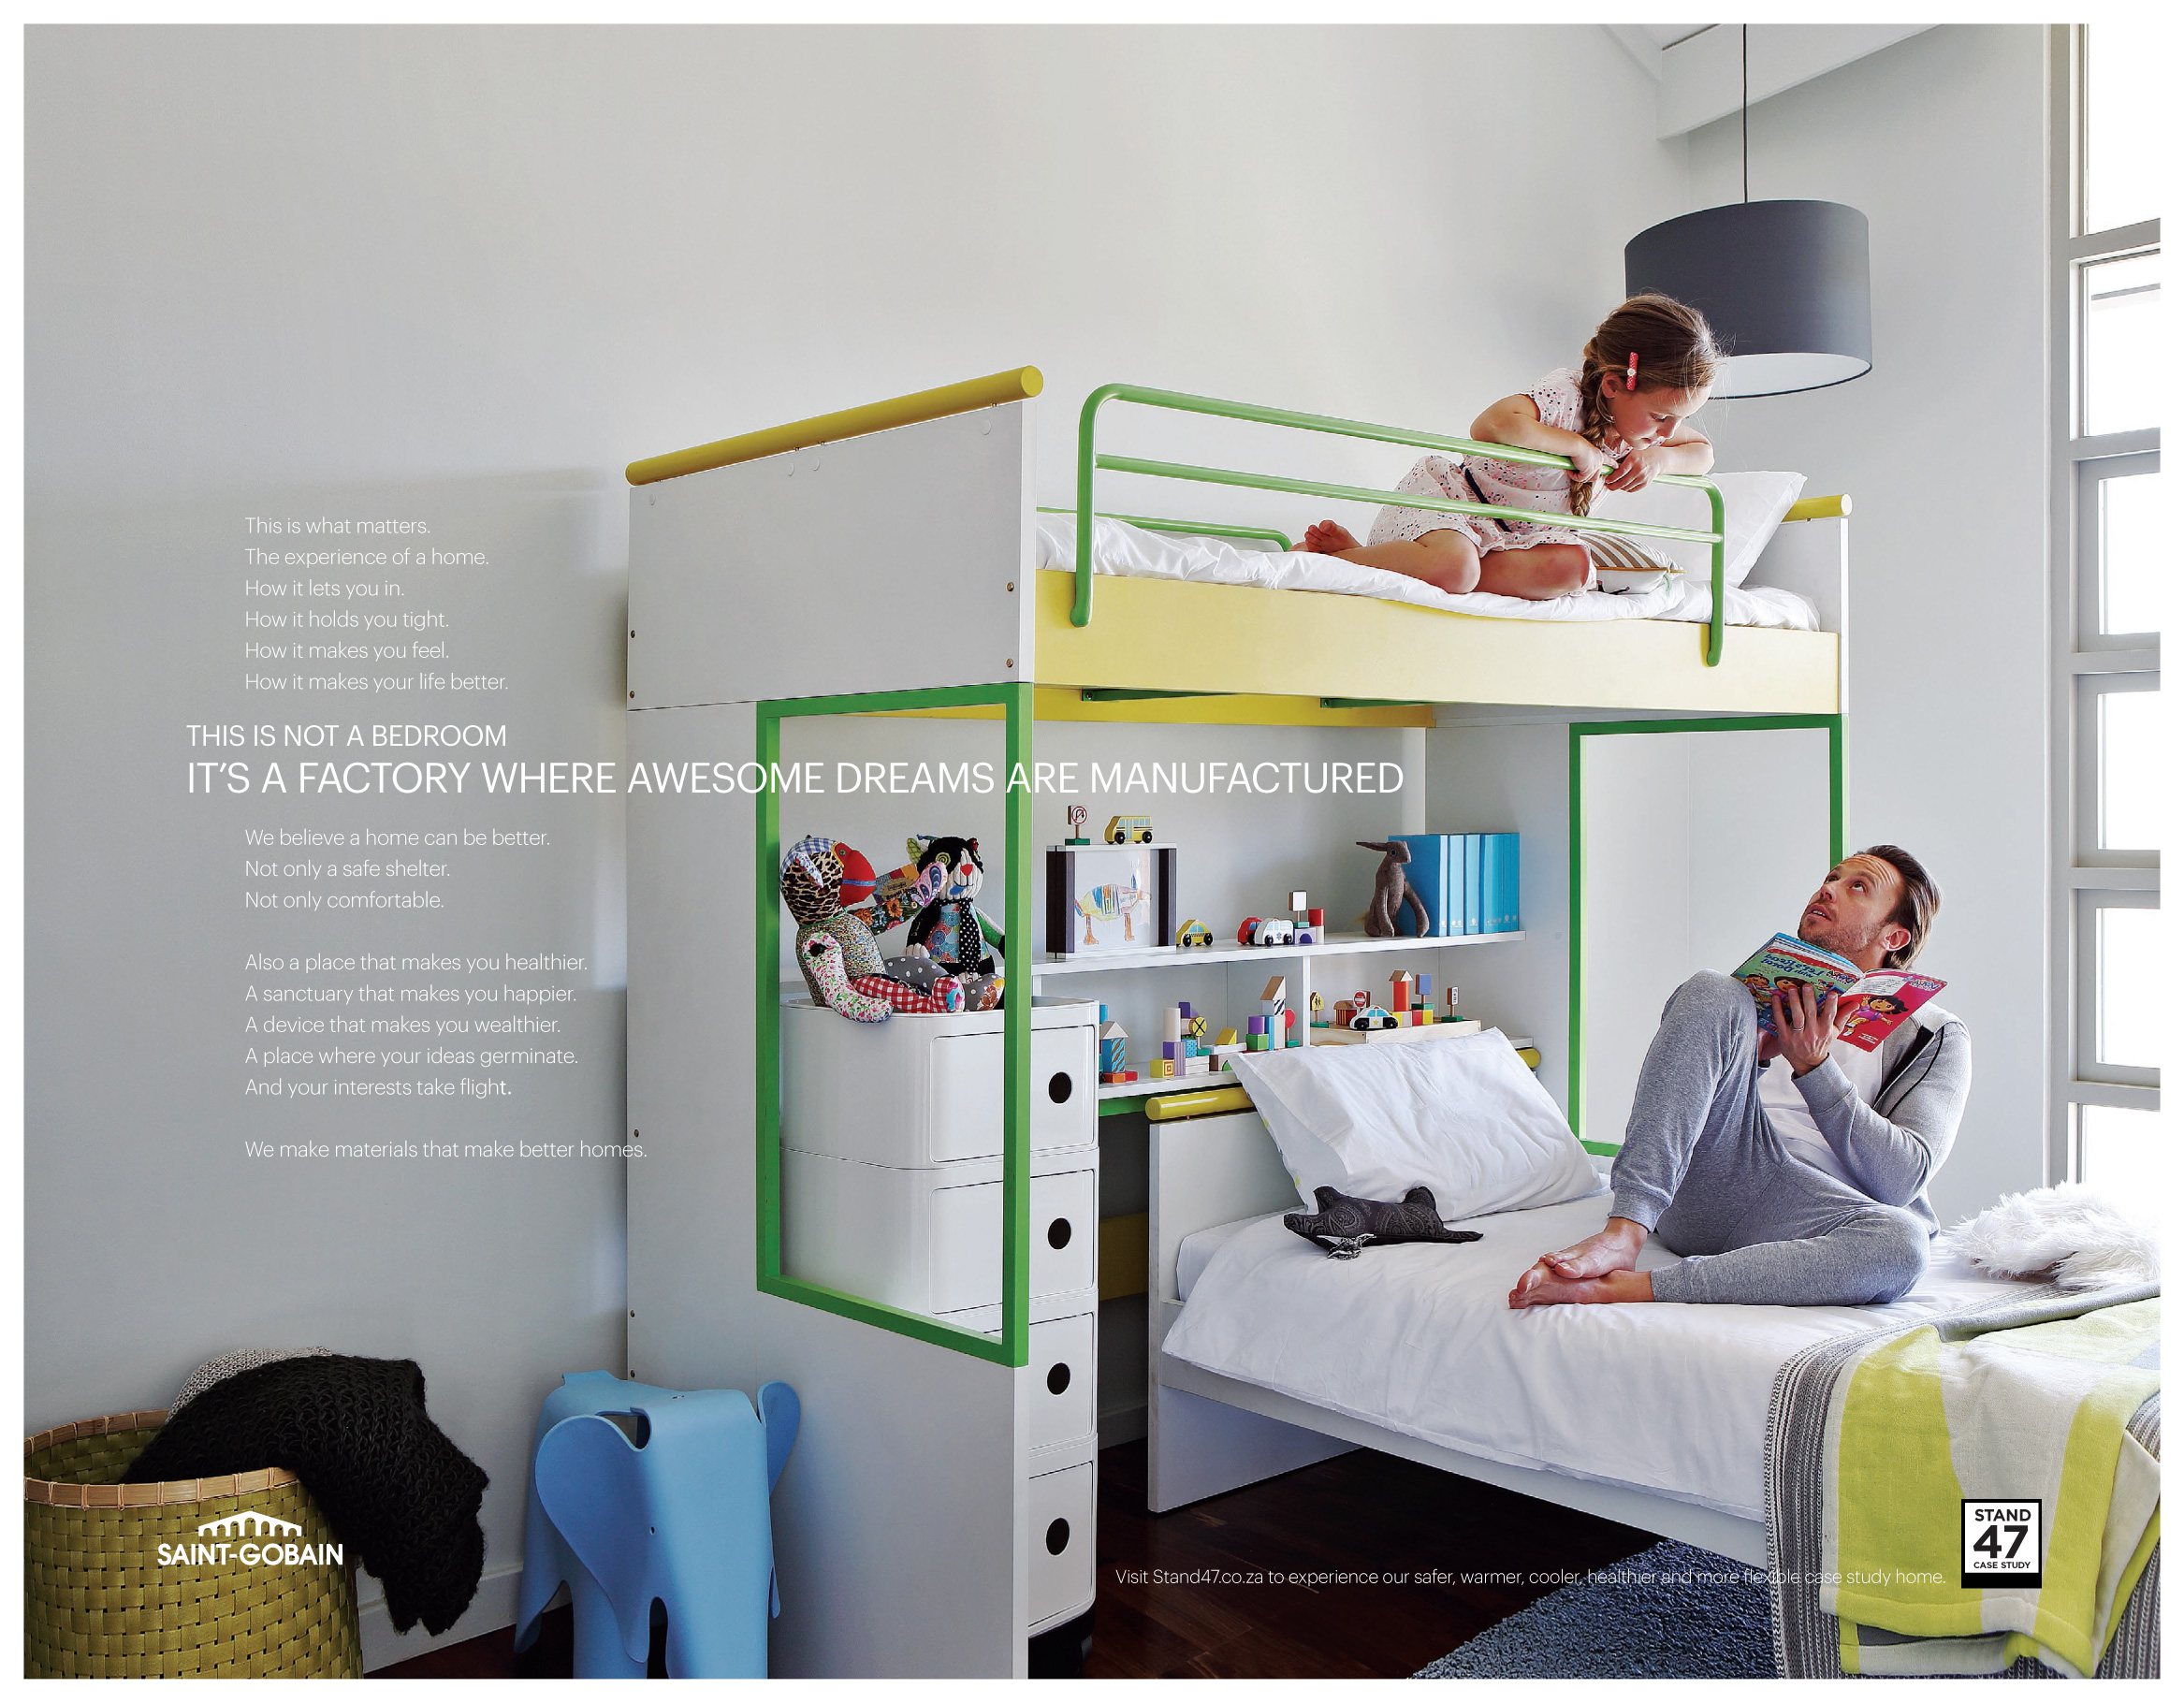 Sain-Gobain_Bedroom